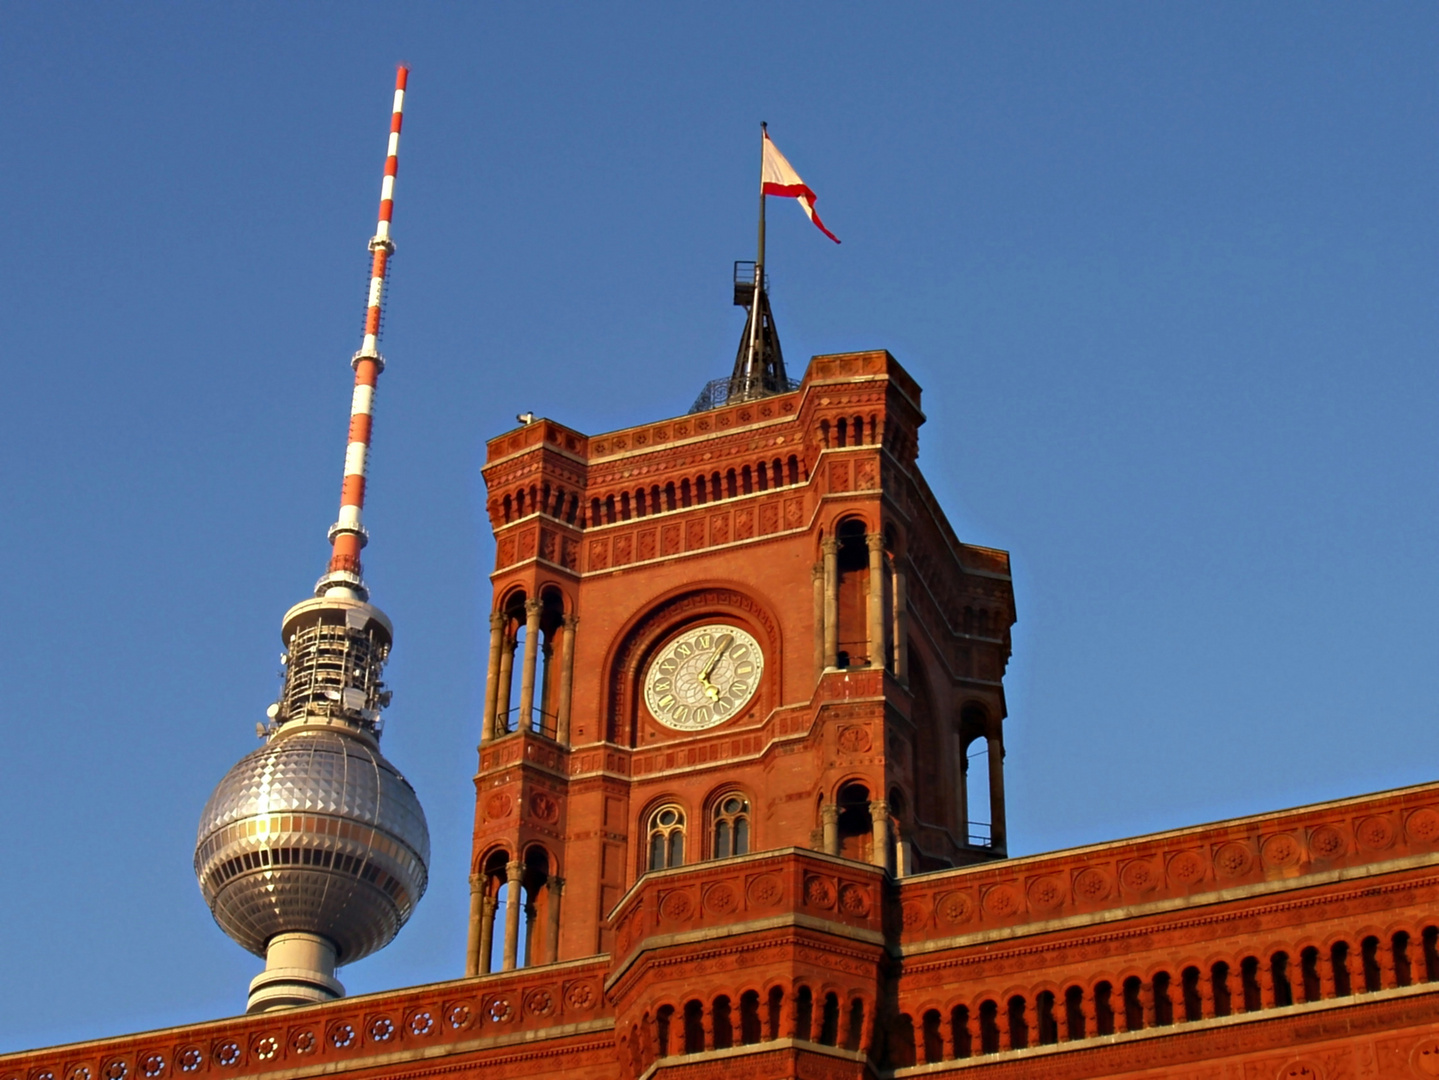 rotes rathaus in berlin mit fernsehturm foto bild. Black Bedroom Furniture Sets. Home Design Ideas